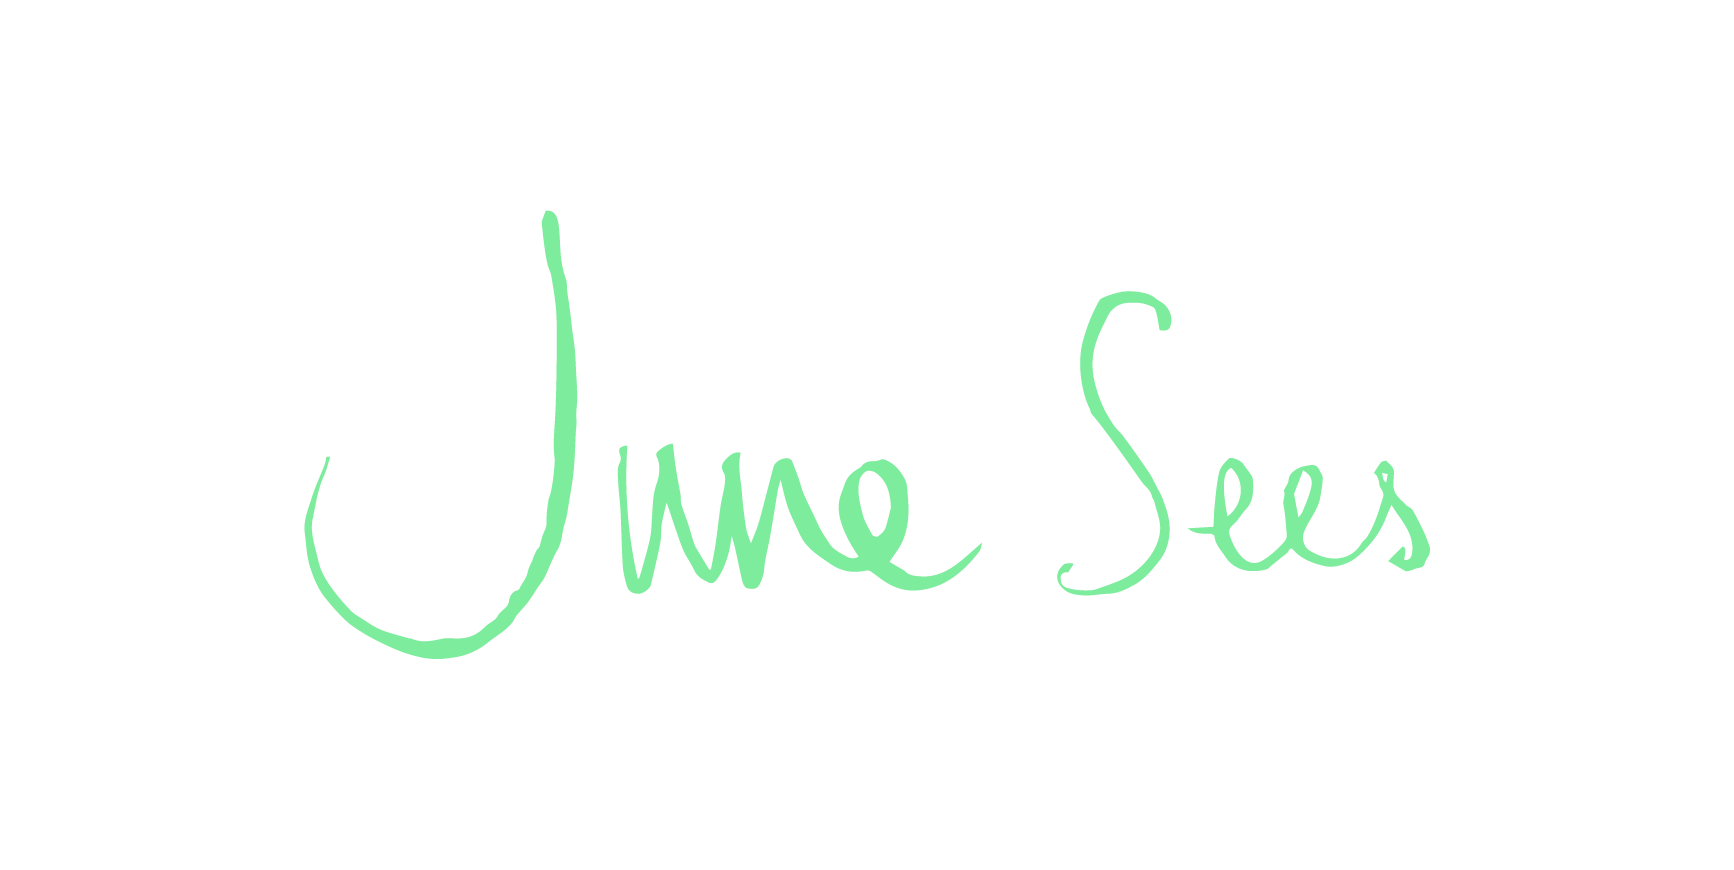 June Sees